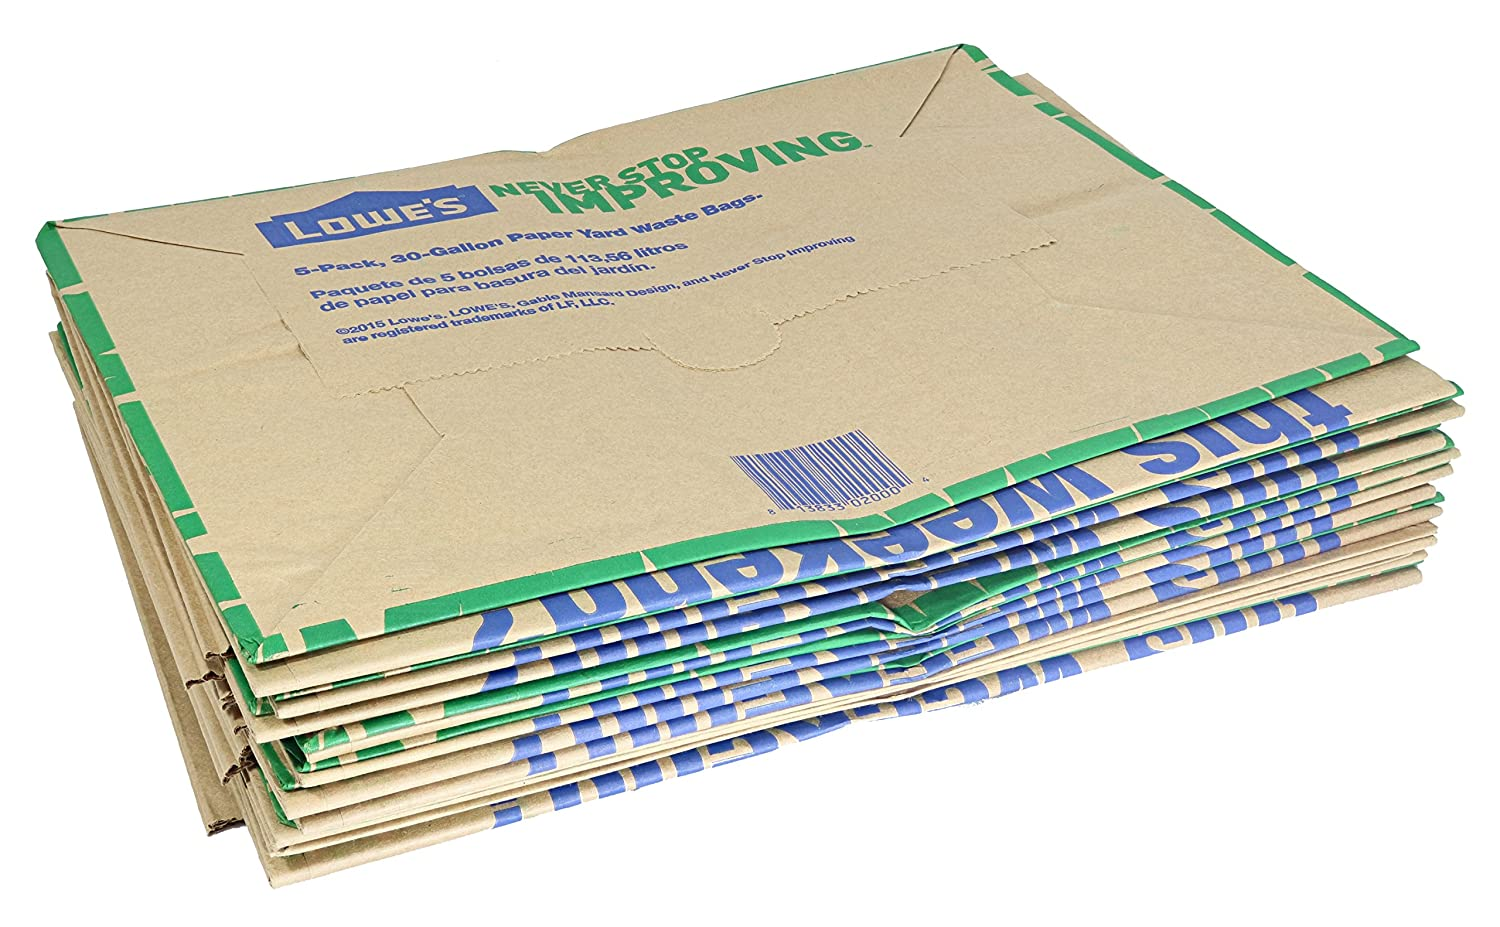 Lowes 30 Gallon Heavy Duty Brown Paper Lawn and Refuse Bags for Home and Garden (10 Count)